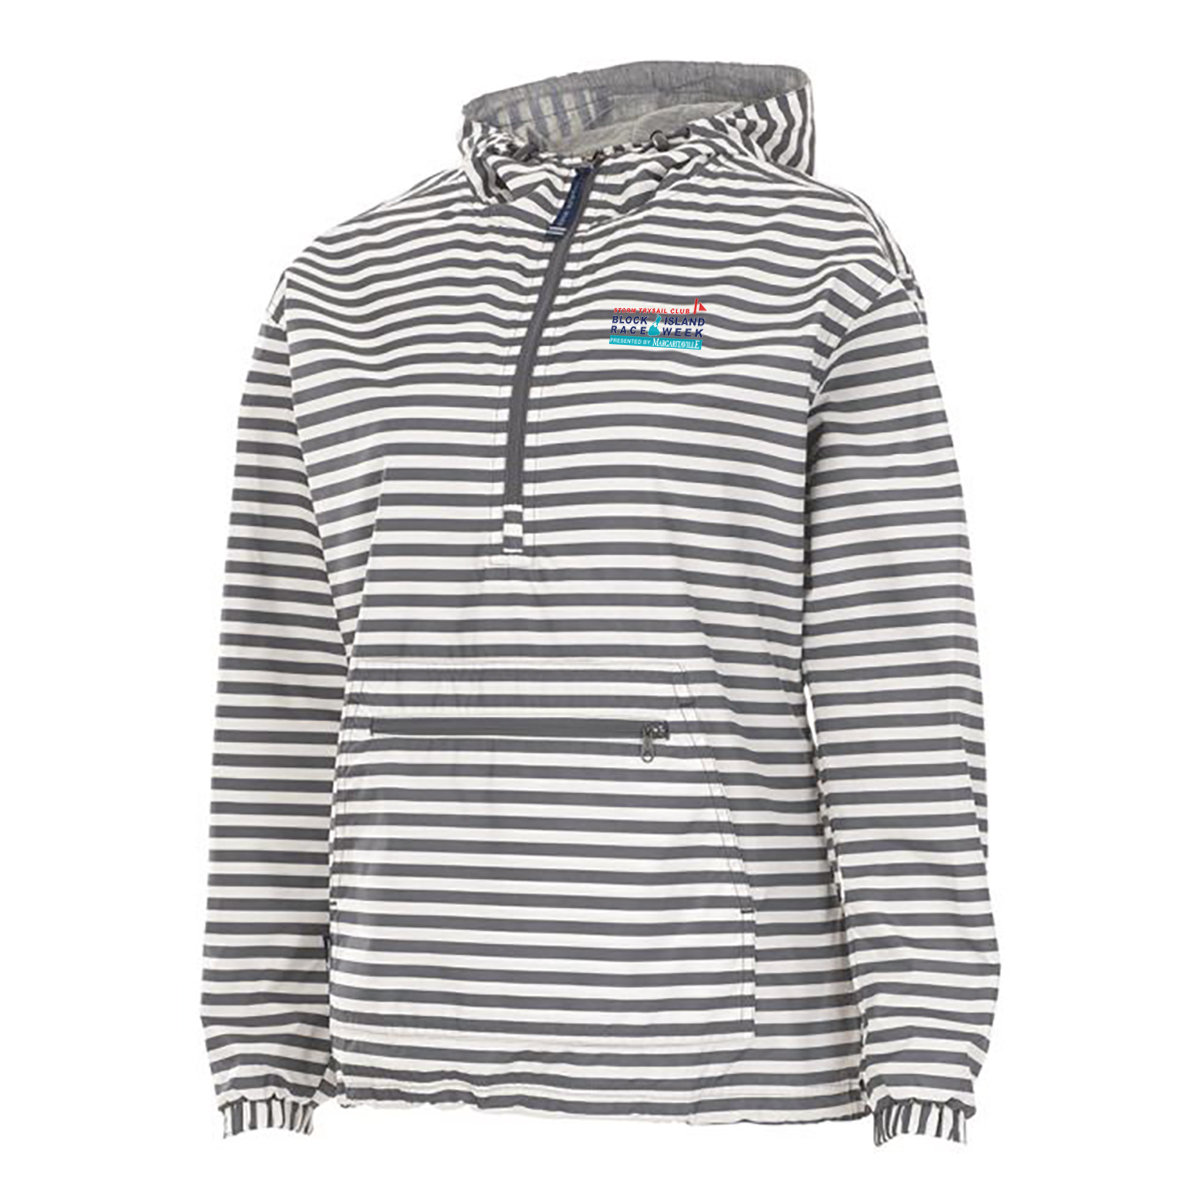 Block Island Race Week 2019 - Women's Striped Pullover